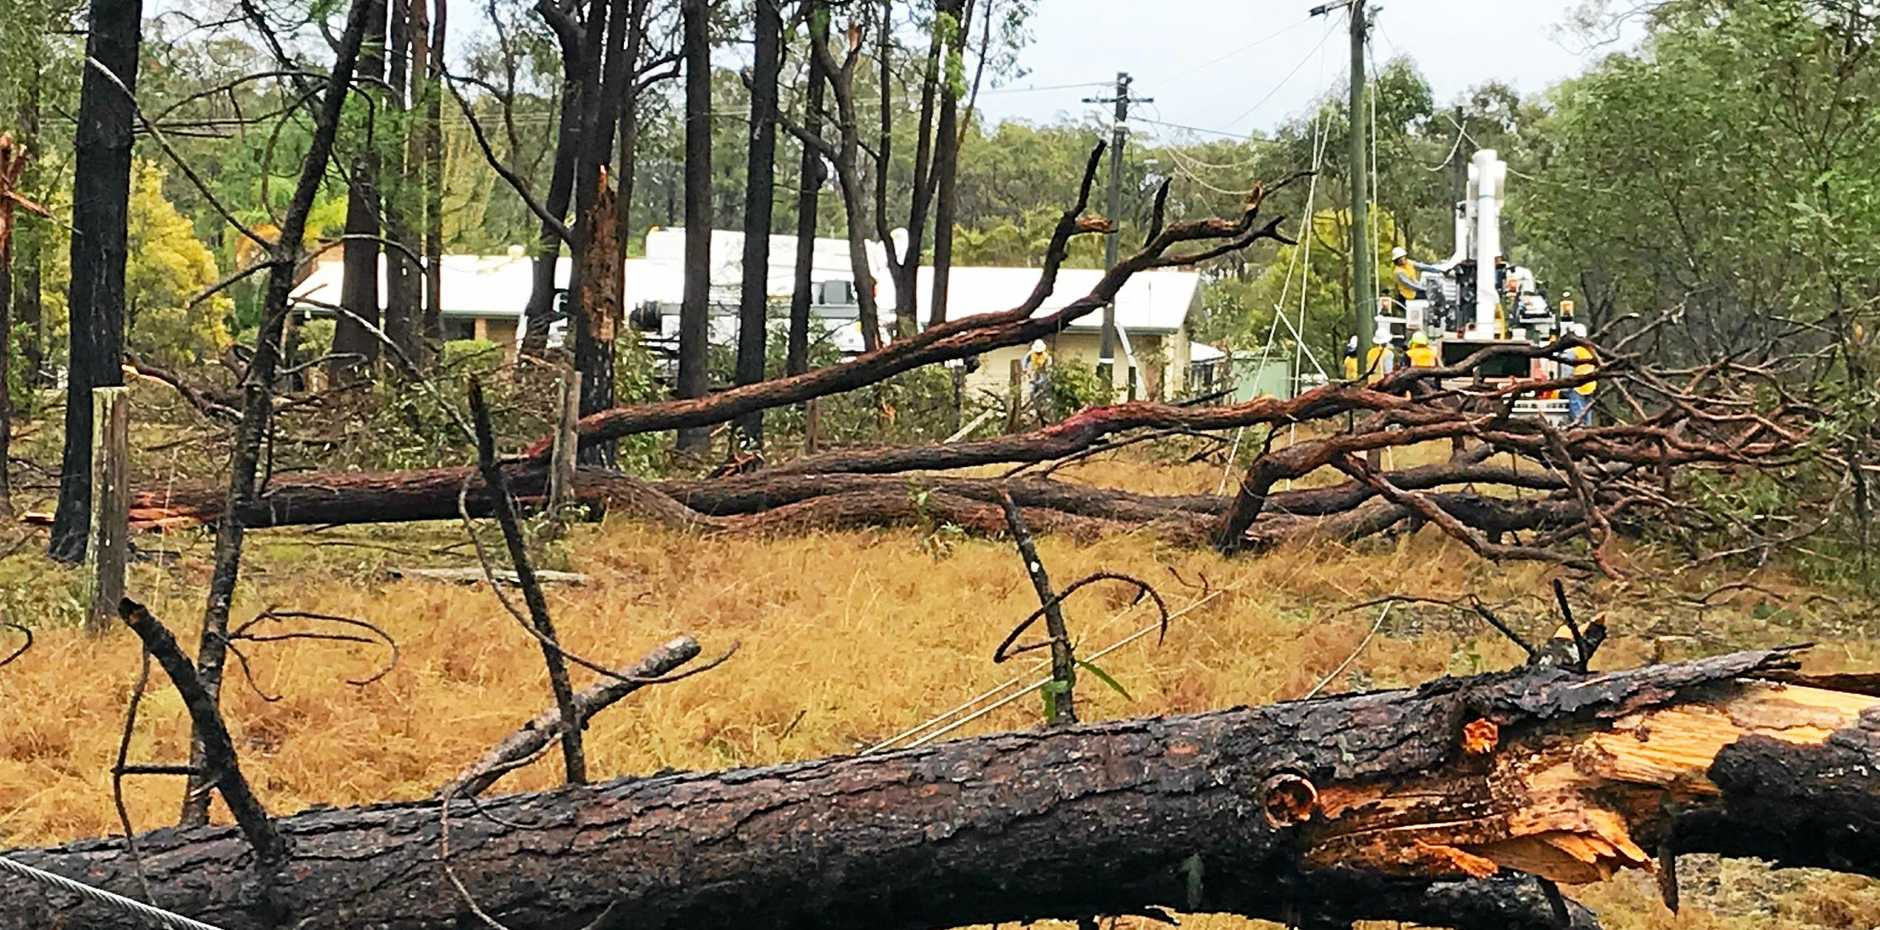 Ergon Energy's restoration effort following severe storms which swept across parts of the Fraser Coast and South Burnett last week has been described as a tremendous success.